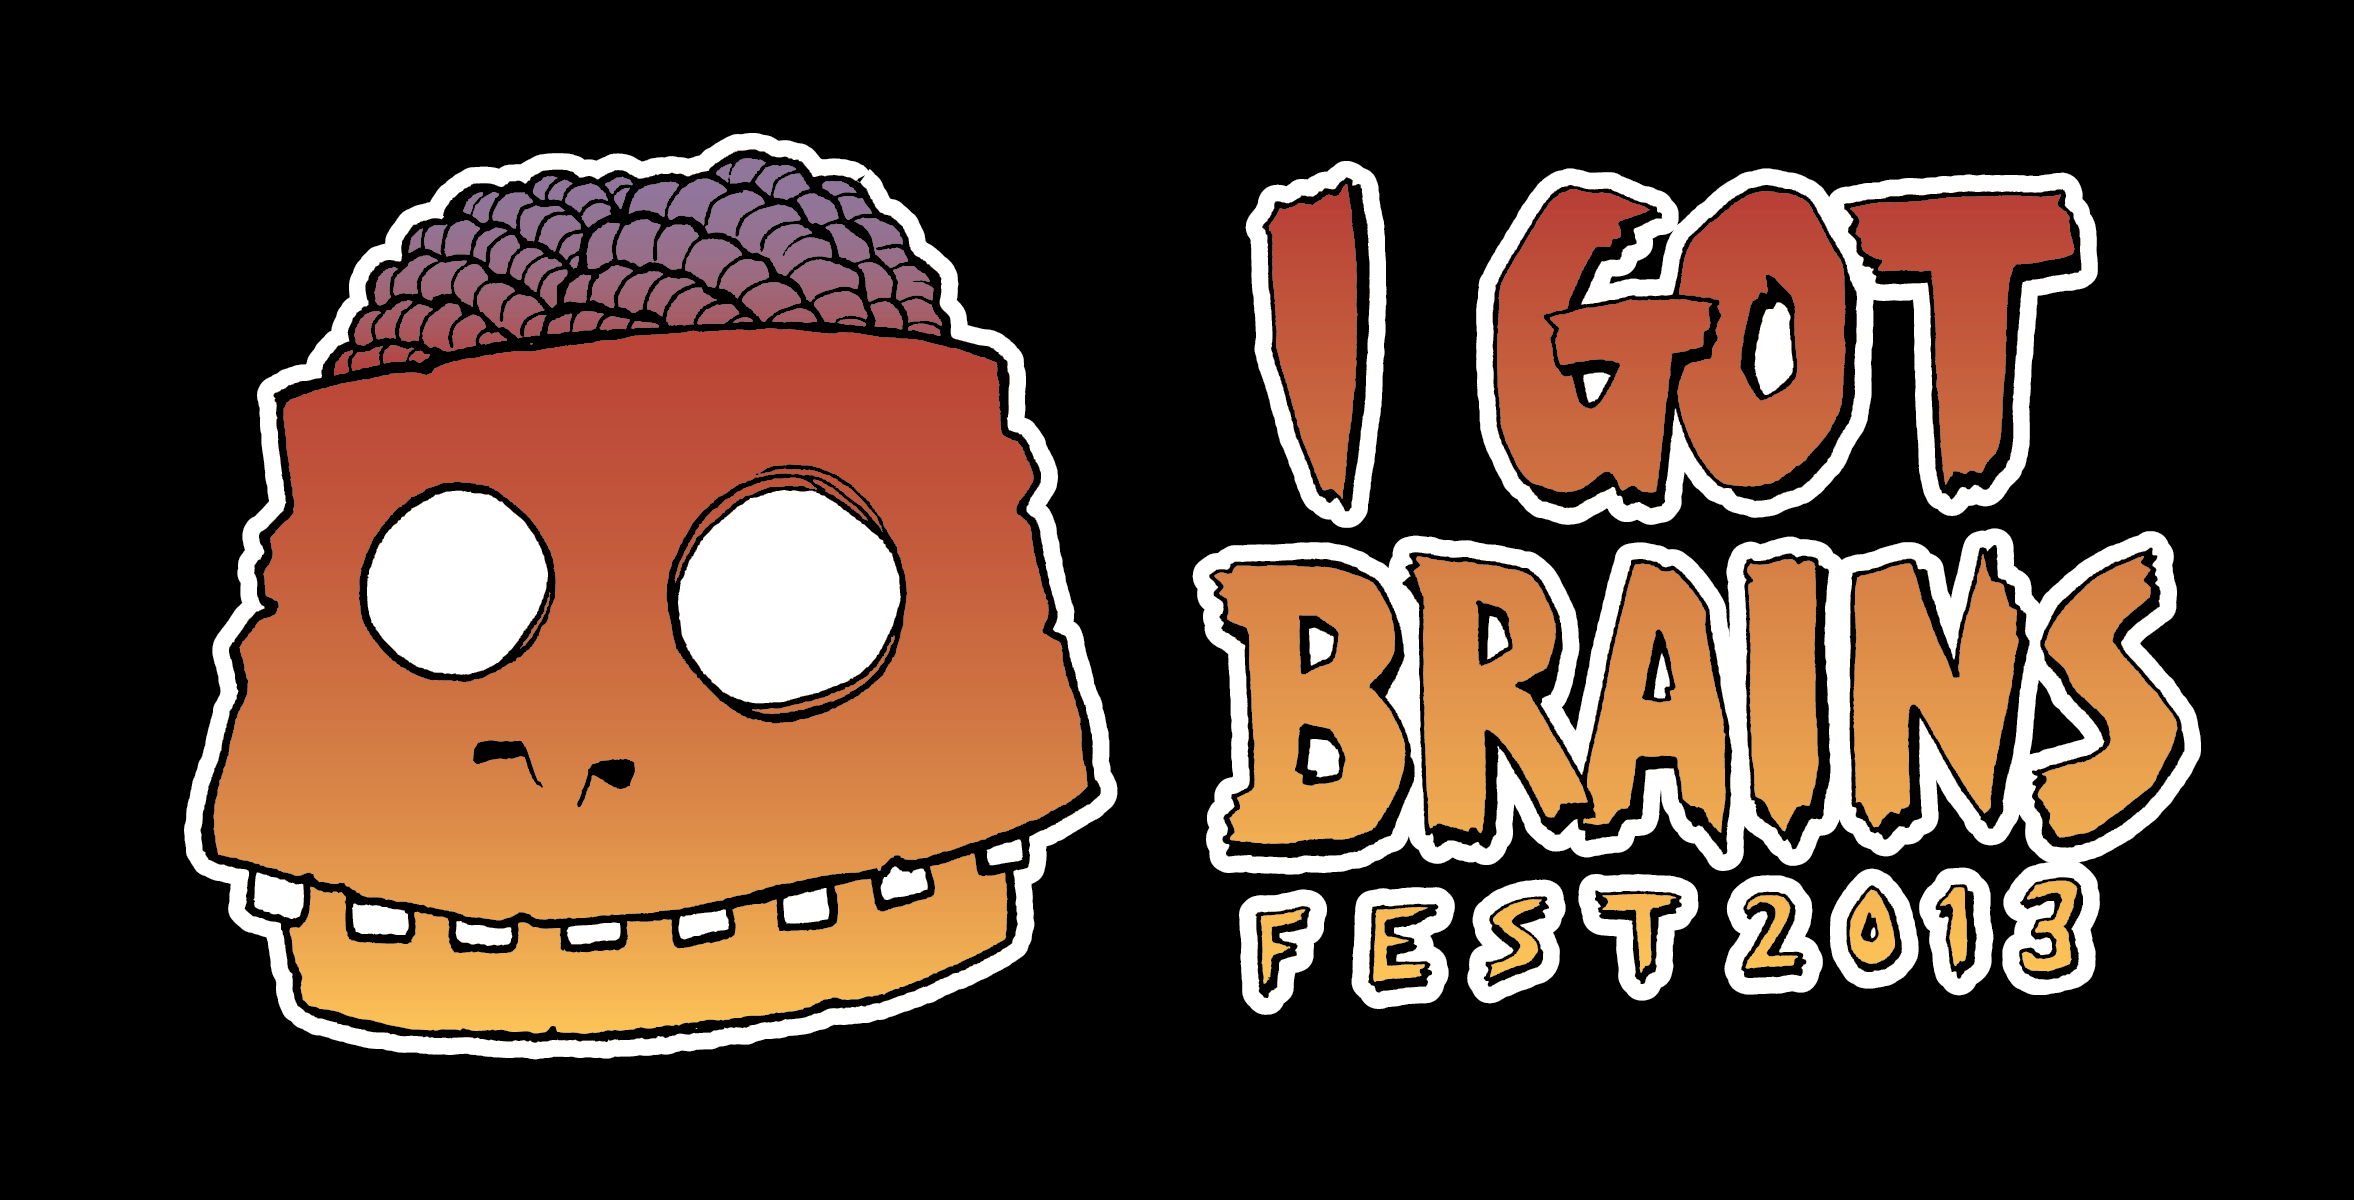 I Got Brains!